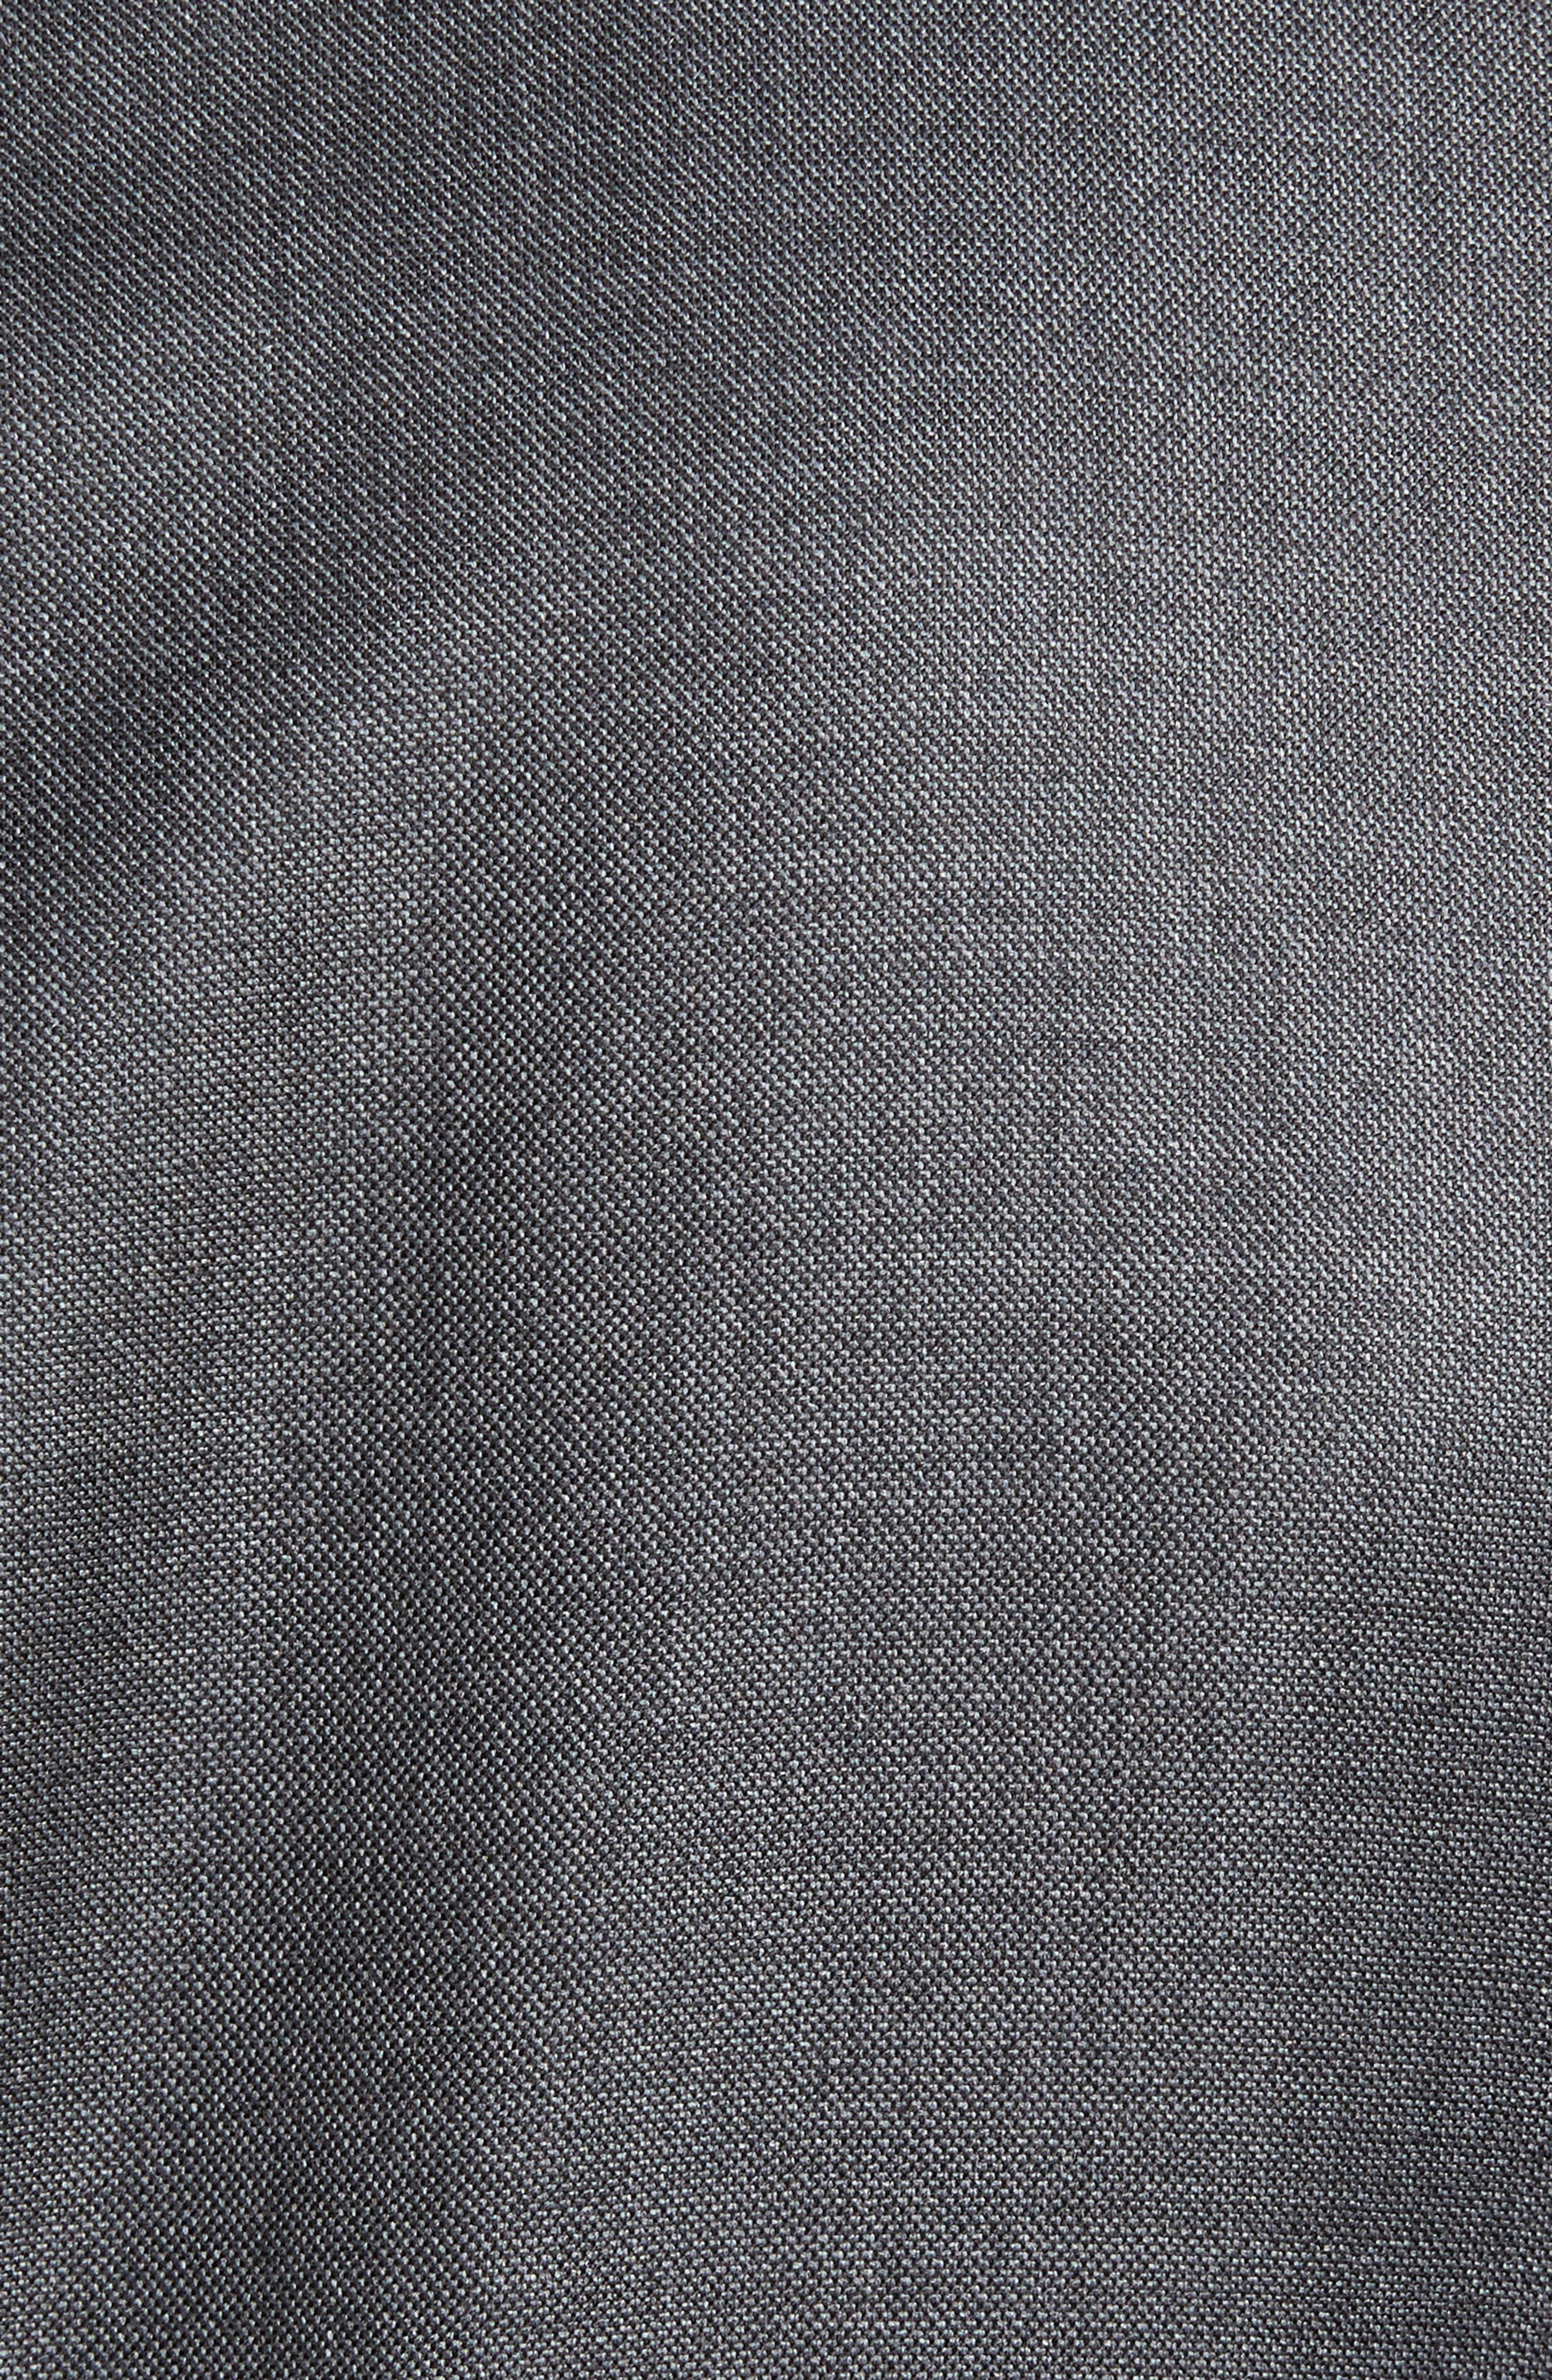 Beckett Classic Fit Sharkskin Wool Suit,                             Alternate thumbnail 7, color,                             Charcoal